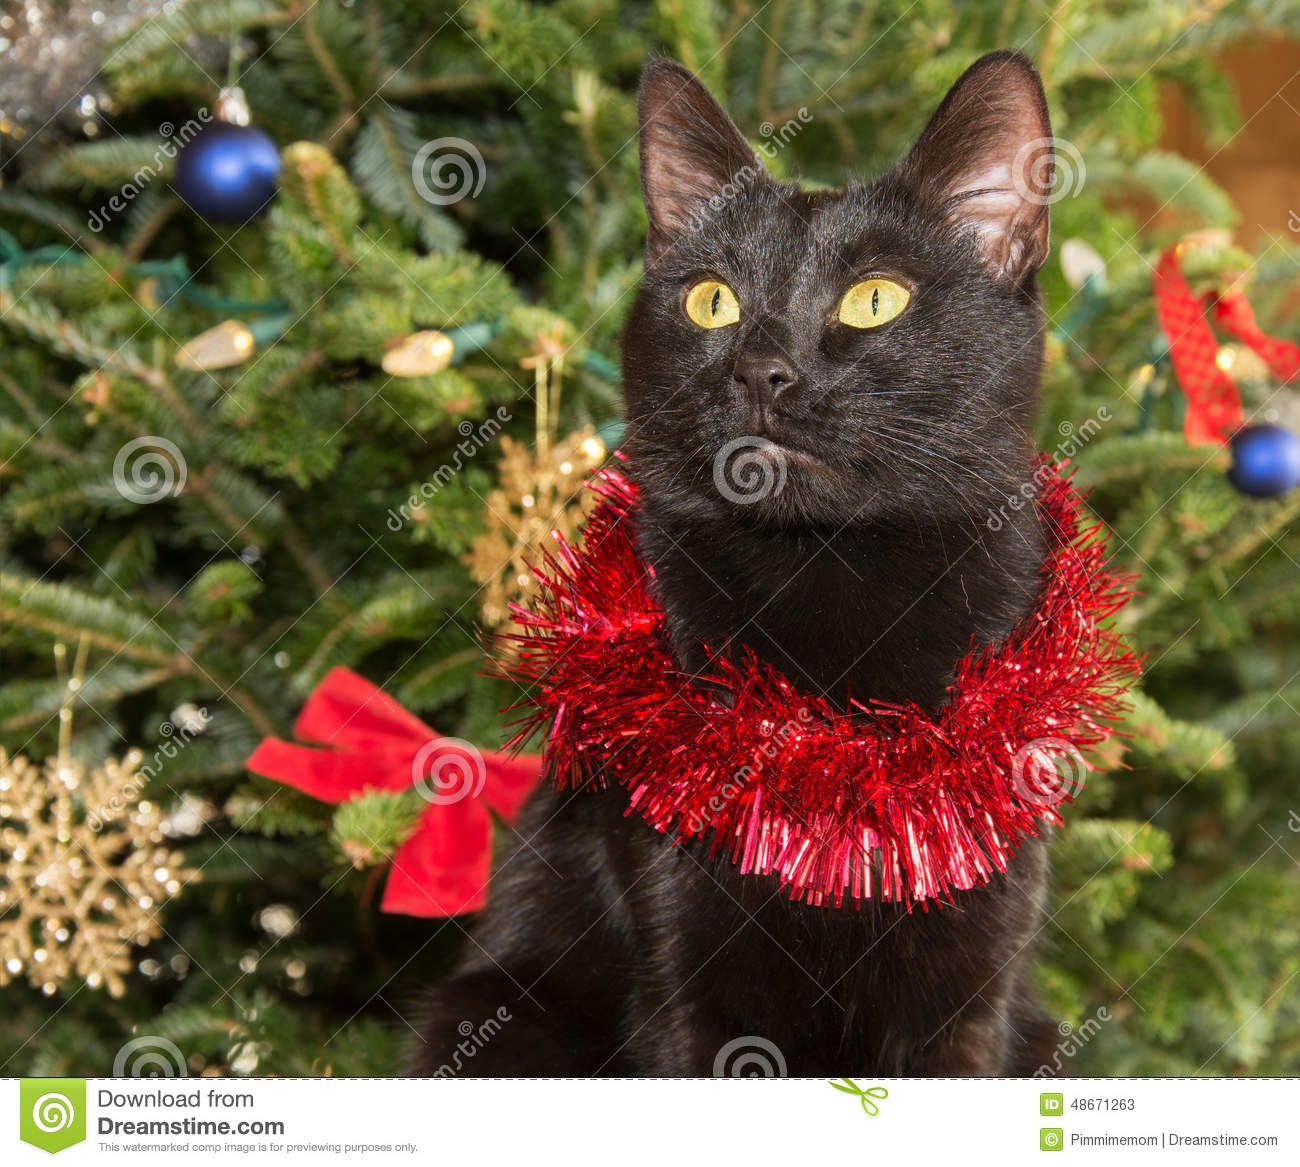 Christmas Tree Made Of Black Cats: Cute Black Cat Wearing Tinsel Against Green Christmas Tree